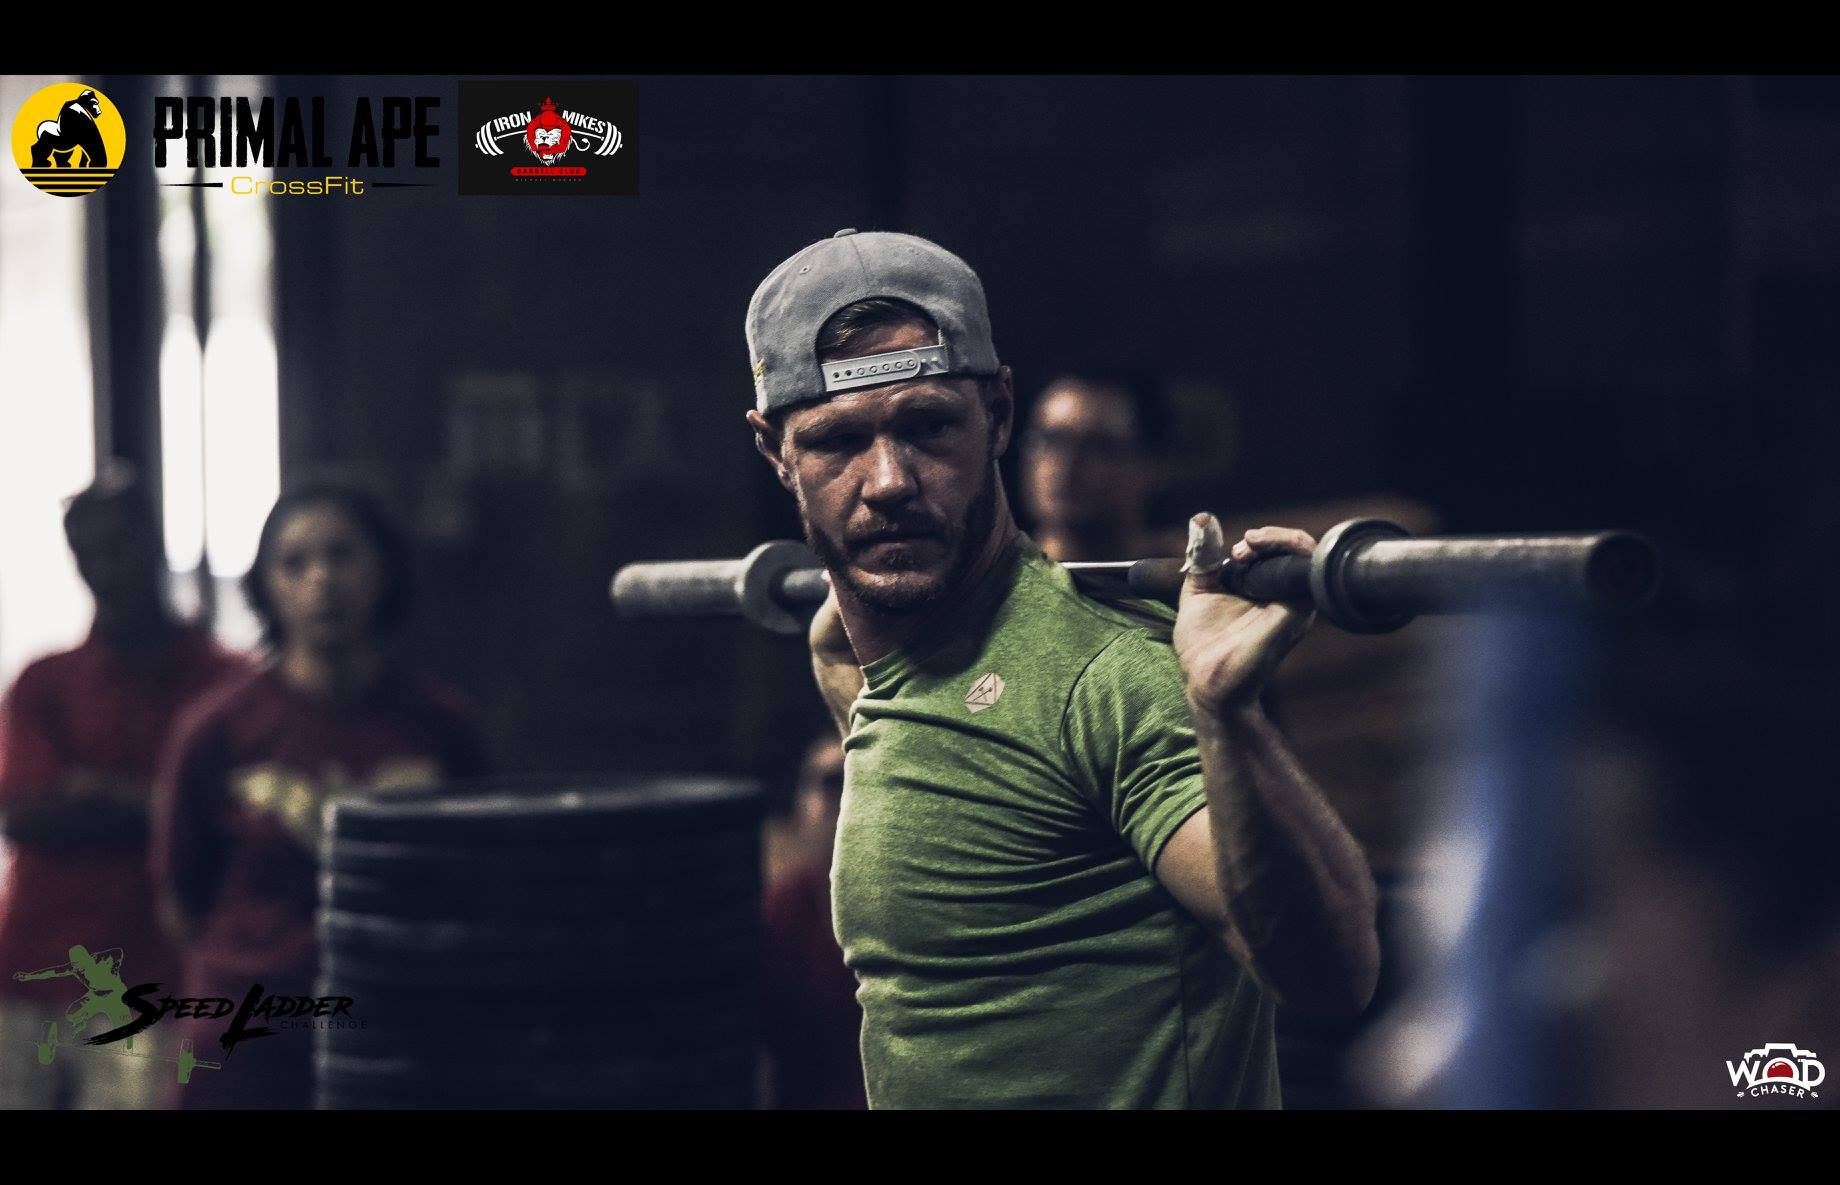 Coach 'Iron Mike' Michael Mogard of Reebok CrossFit 673 blasts his way to top post at Men's RX.(Photo: WOD Chaser)